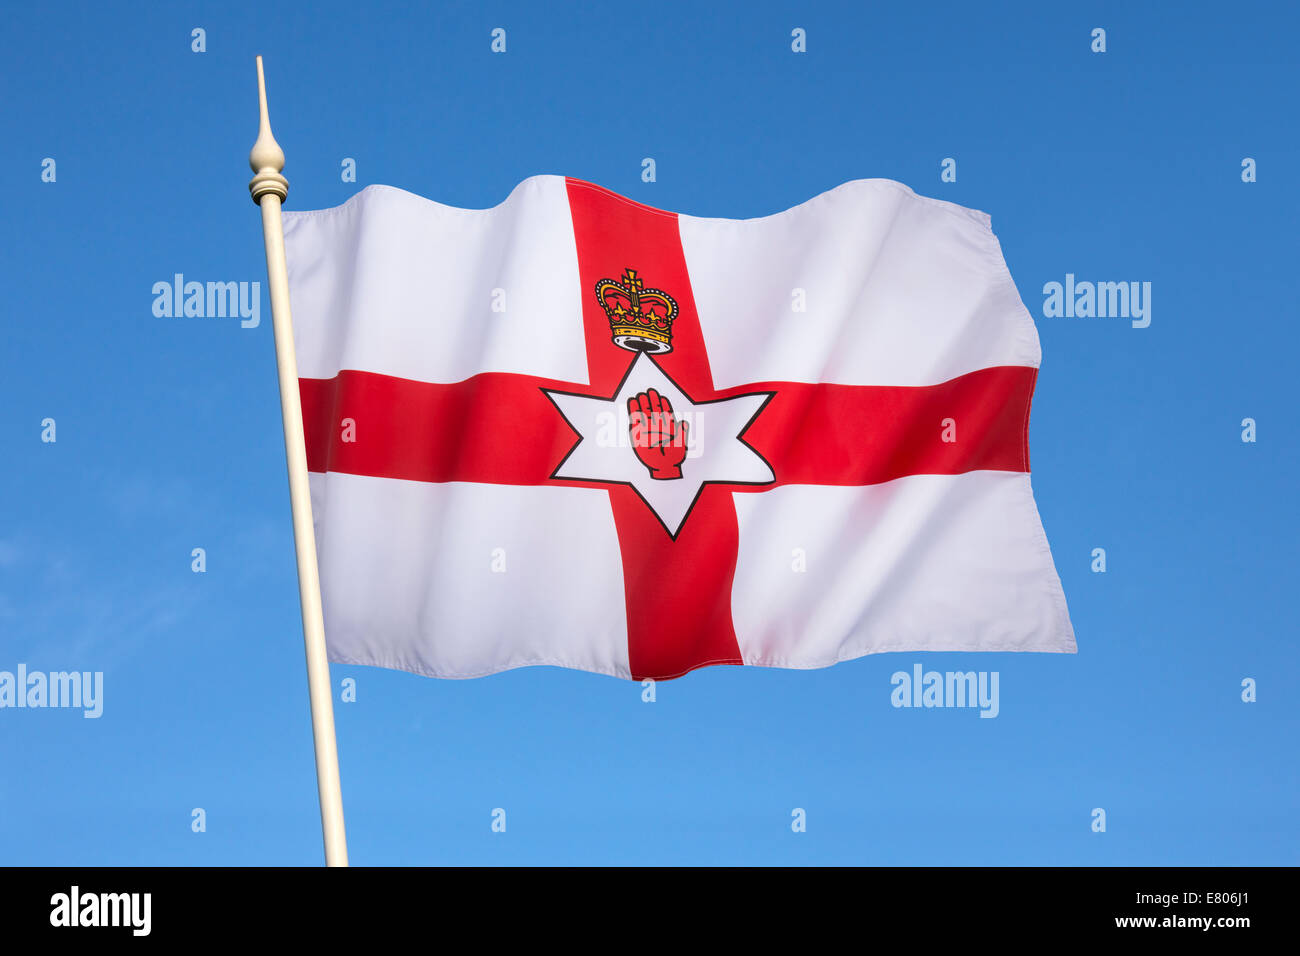 Flag of the Government of Northern Ireland. Also known as the Ulster Banner. Northern Ireland is a part of the United - Stock Image